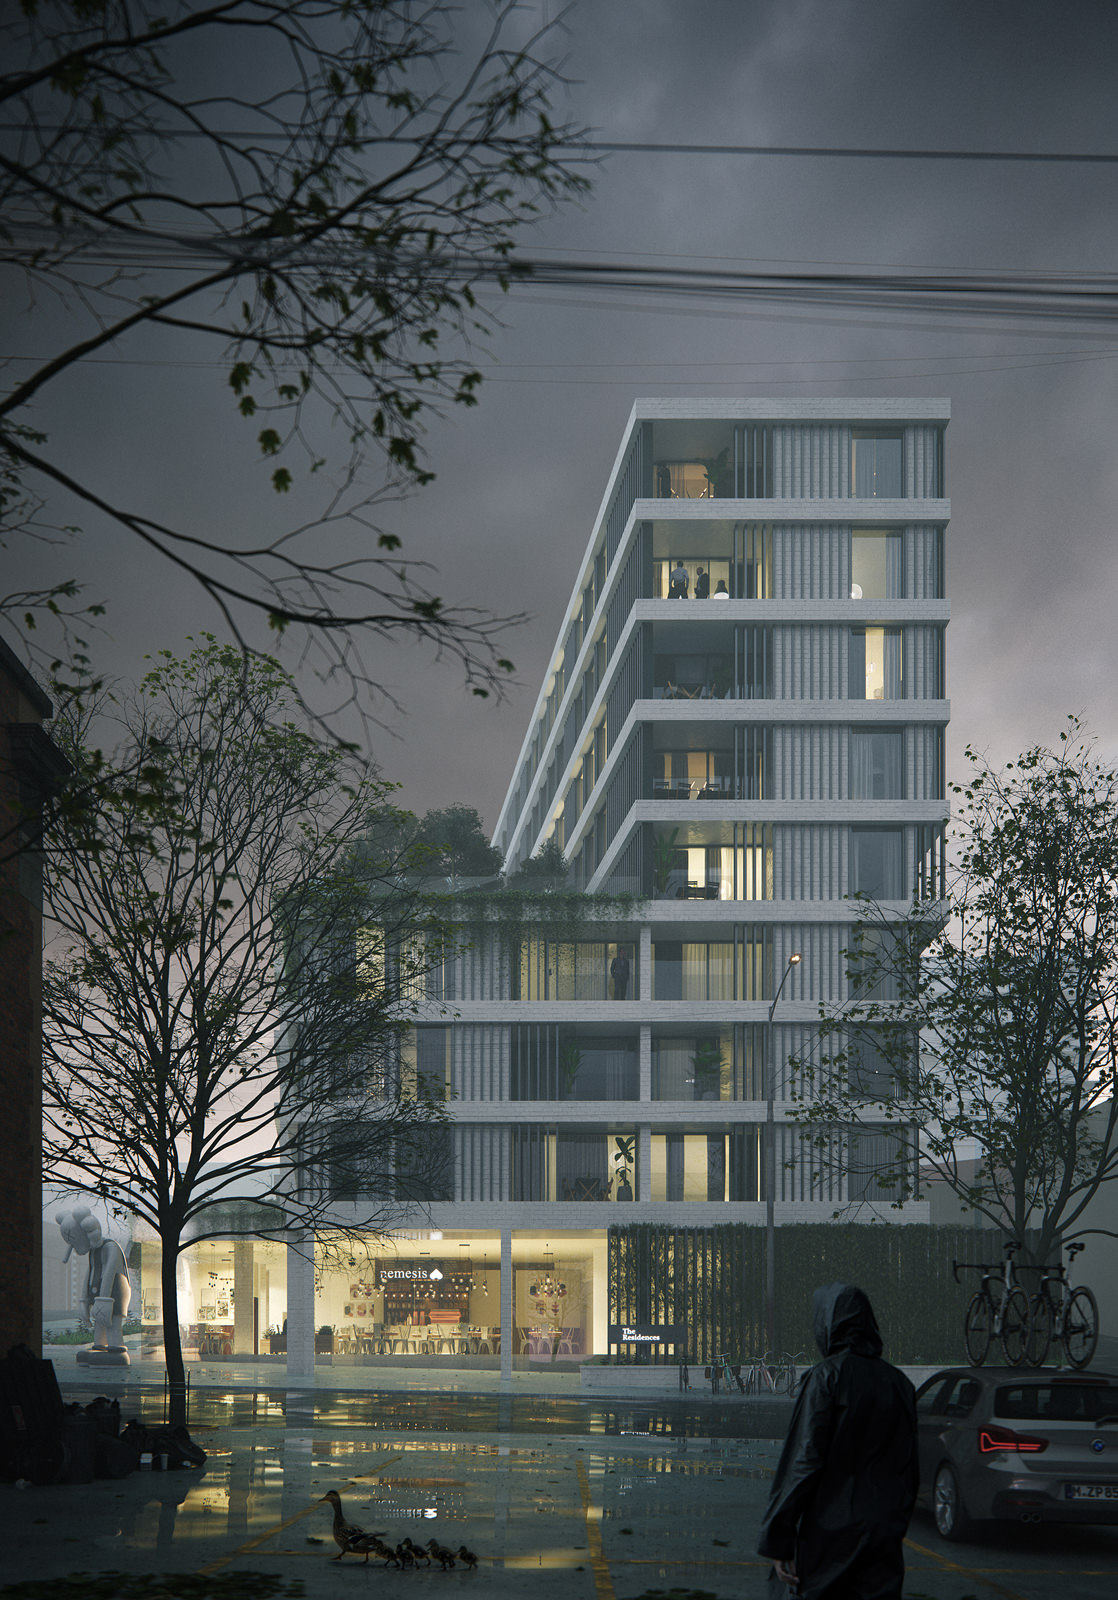 Urban 3D architectural render of apartment block in Vancouver, Canada in a foggy atmosphere with a person in the raincoat in the foreground and a mother duck with baby ducklings crossing the street nearby